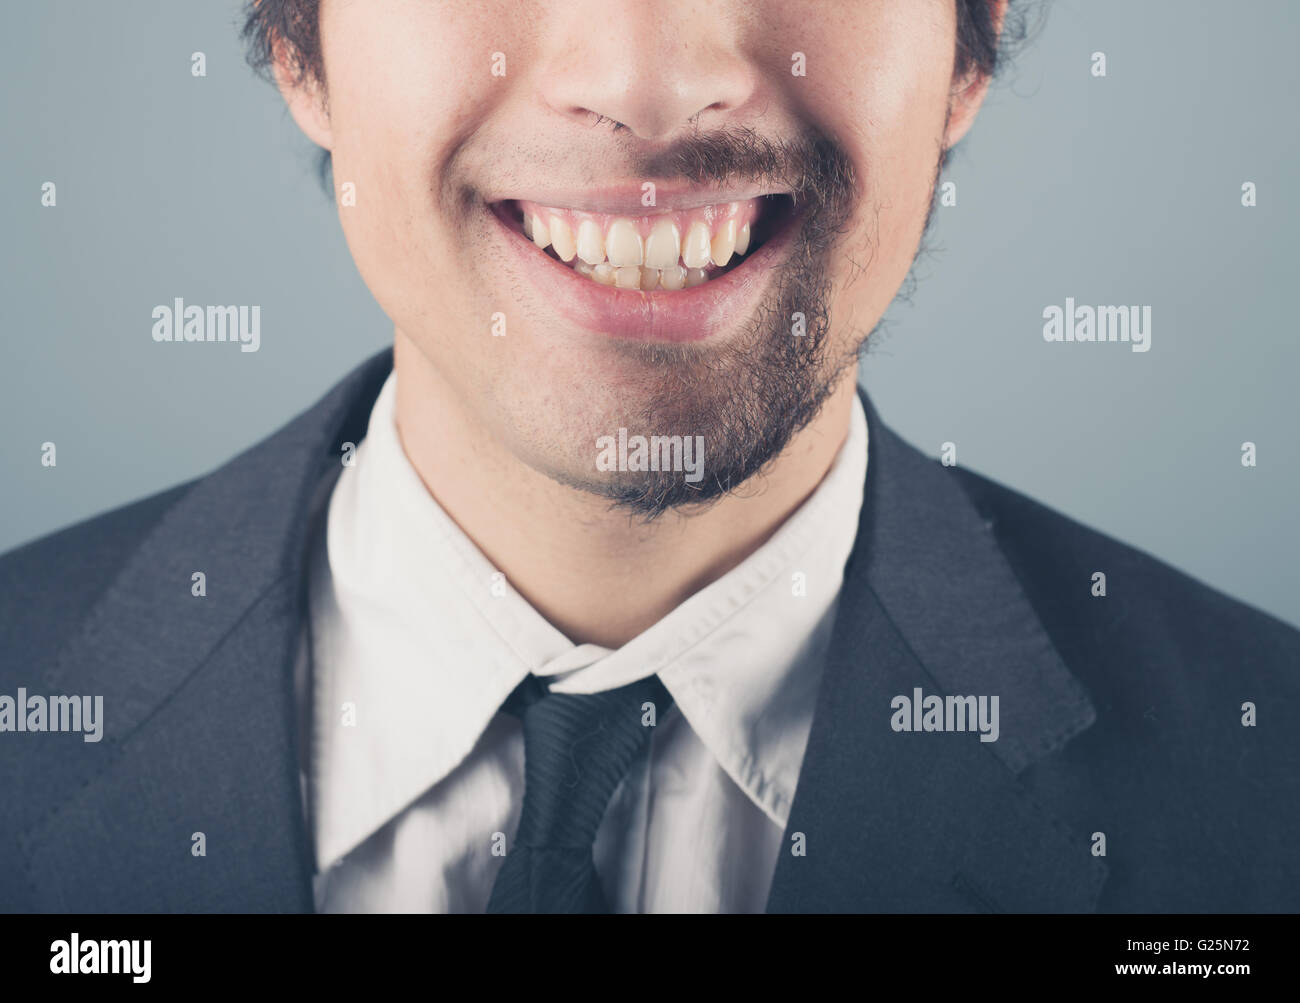 A young businessman with a half shaved beard - Stock Image